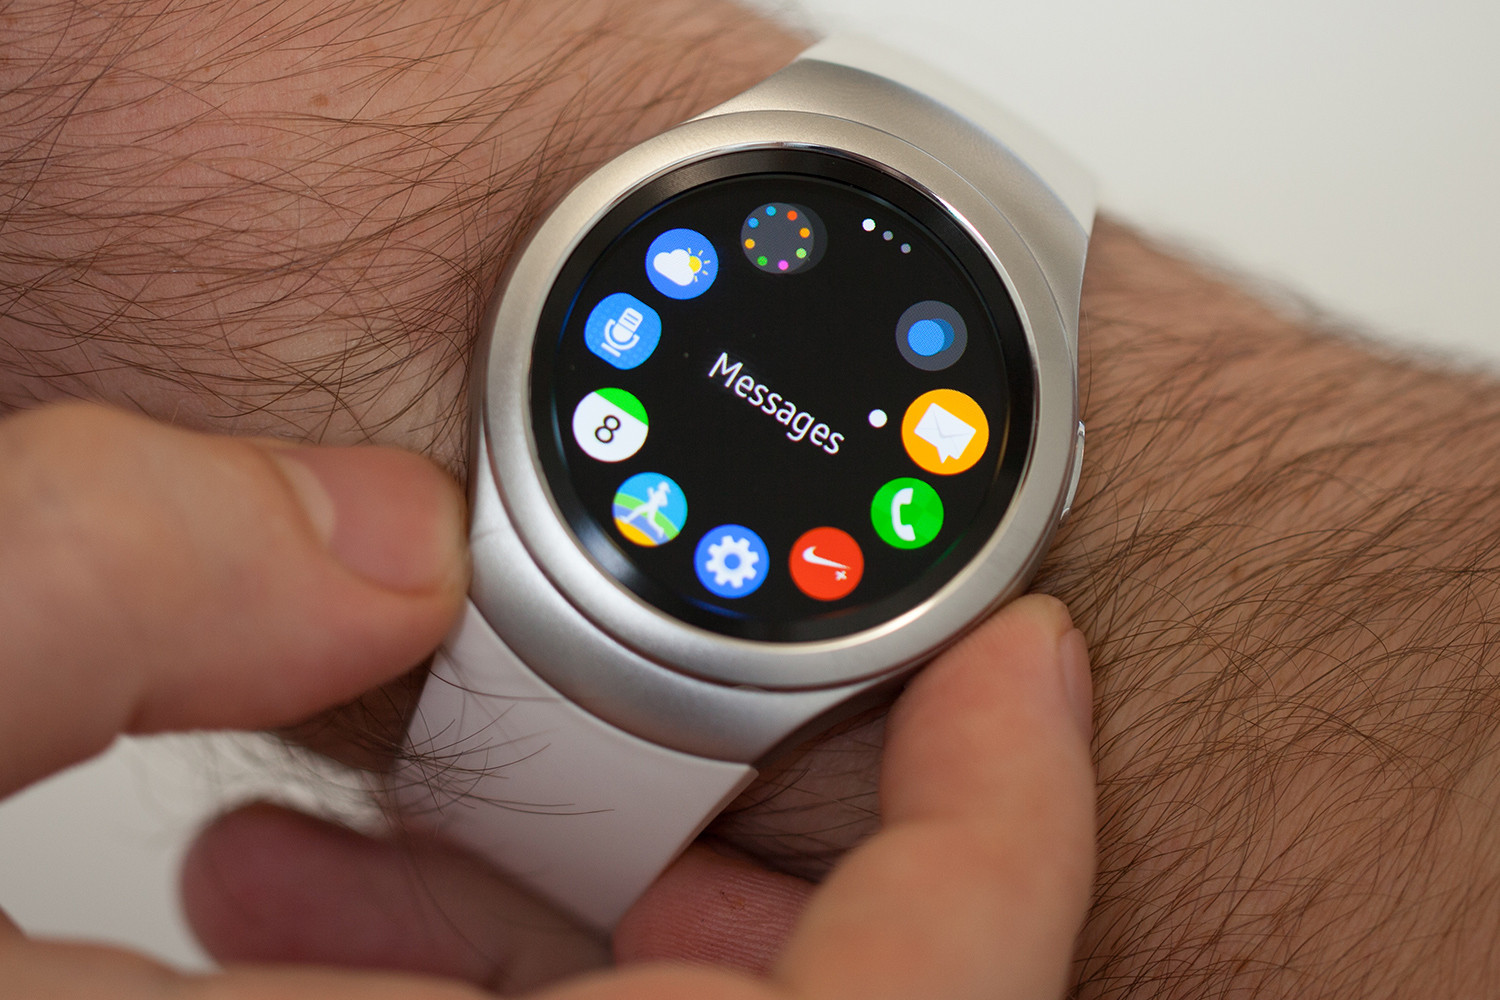 Samsung confirms that it's done with Android Wear, says Tizen is the future